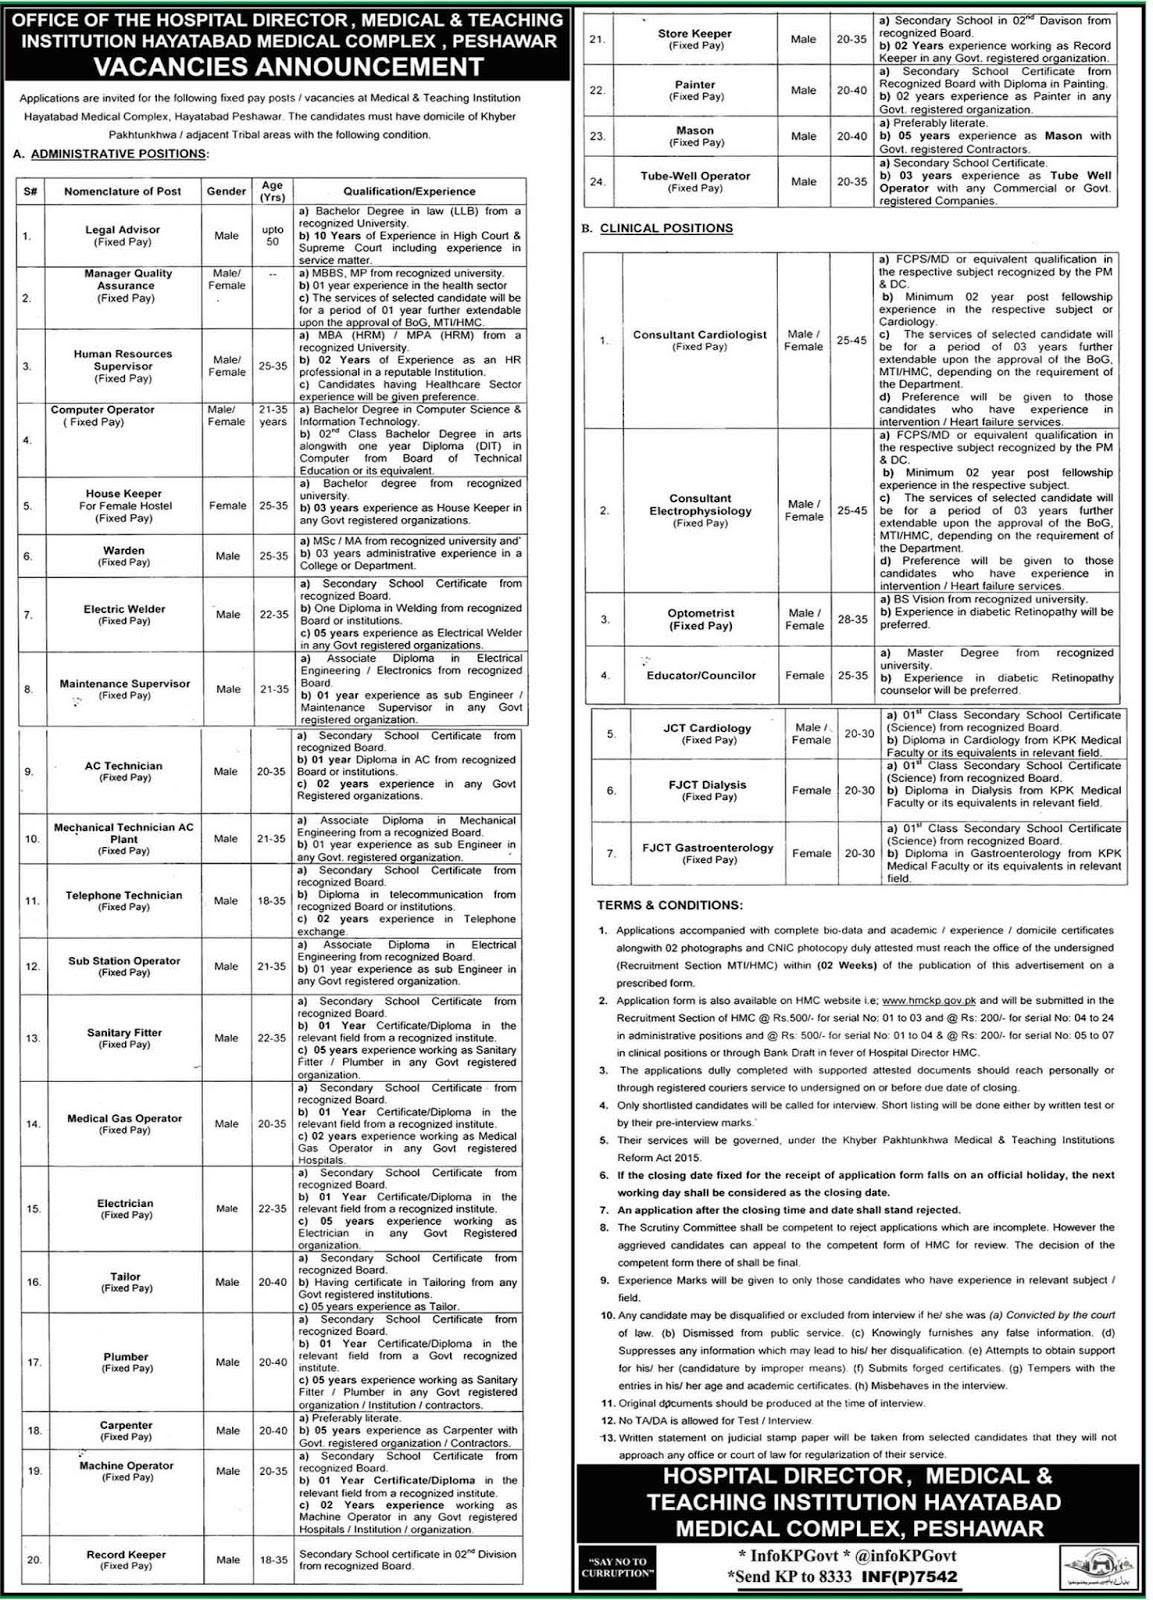 Medical & Teaching Institution Hayatabad Medical Complex Peshawar jobs